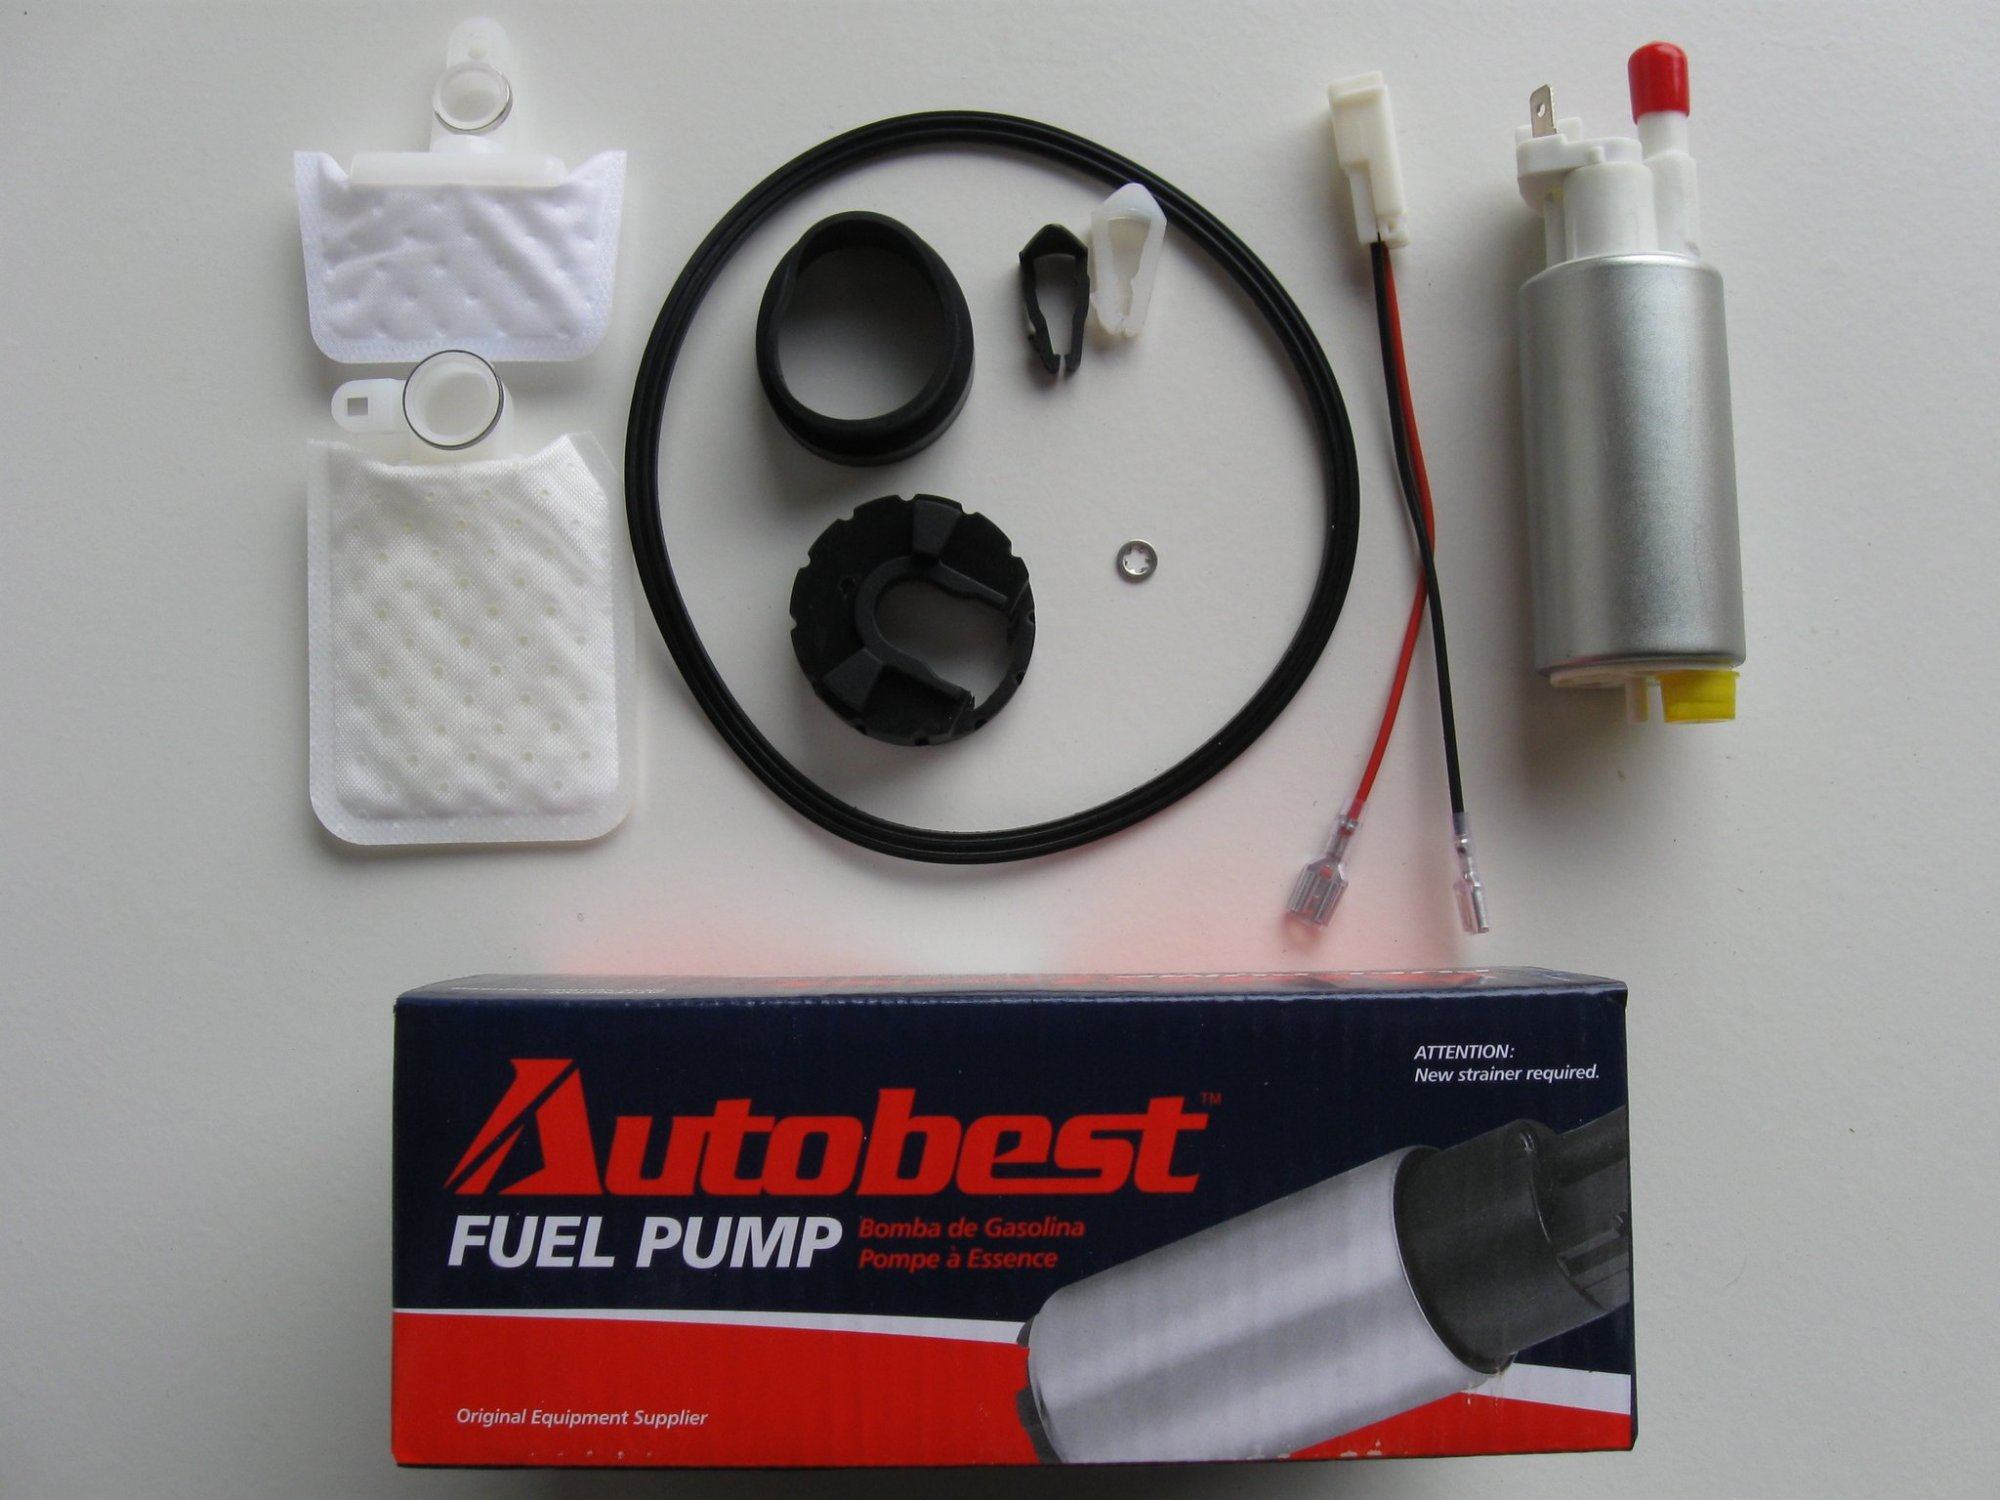 hight resolution of 2000 ford focus fuel pump and strainer set a0 f1459